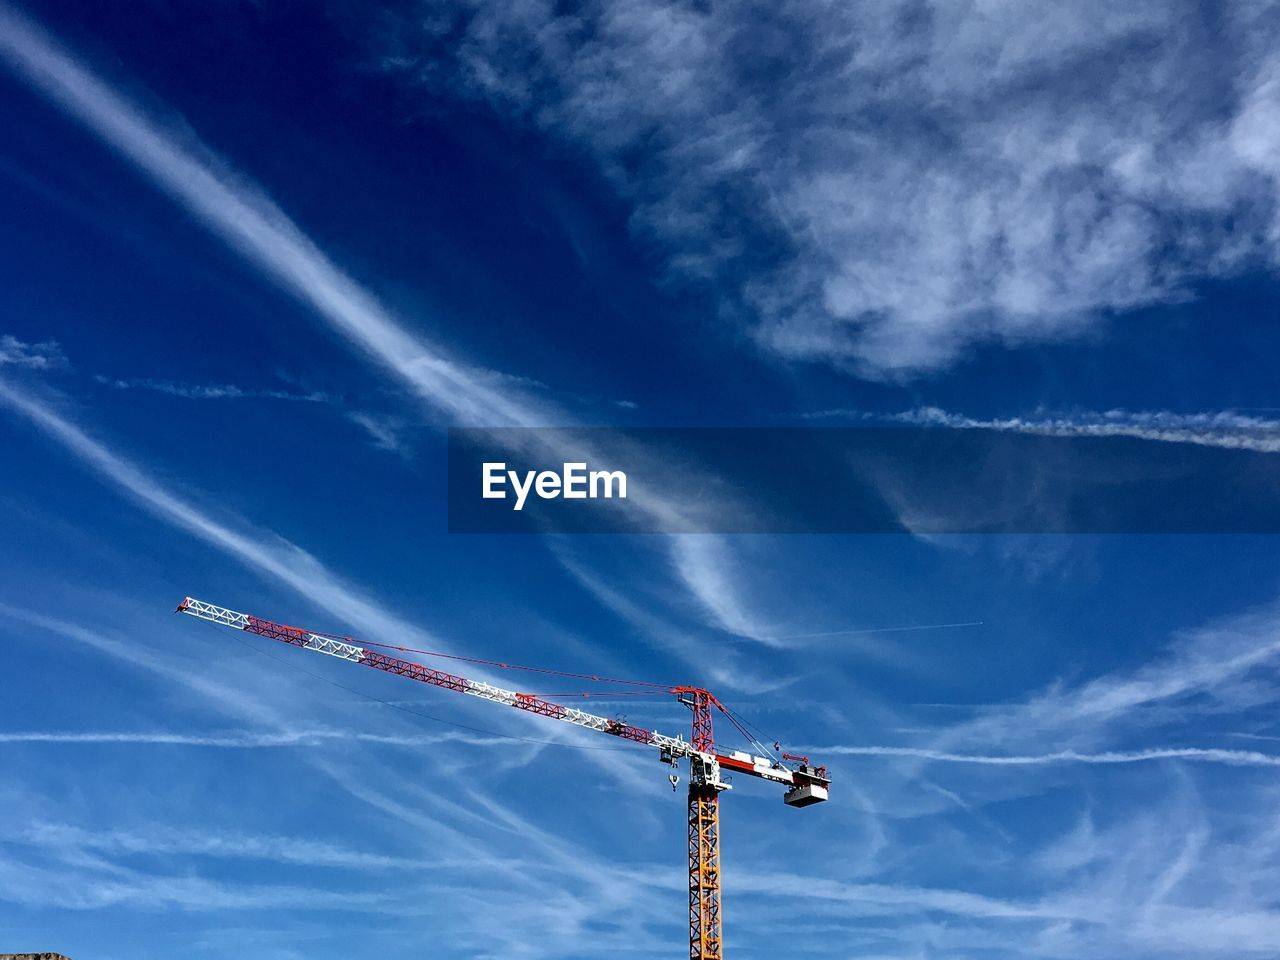 cloud - sky, sky, construction industry, low angle view, blue, crane - construction machinery, nature, no people, day, construction site, machinery, industry, development, construction equipment, outdoors, metal, vapor trail, crane, construction machinery, building - activity